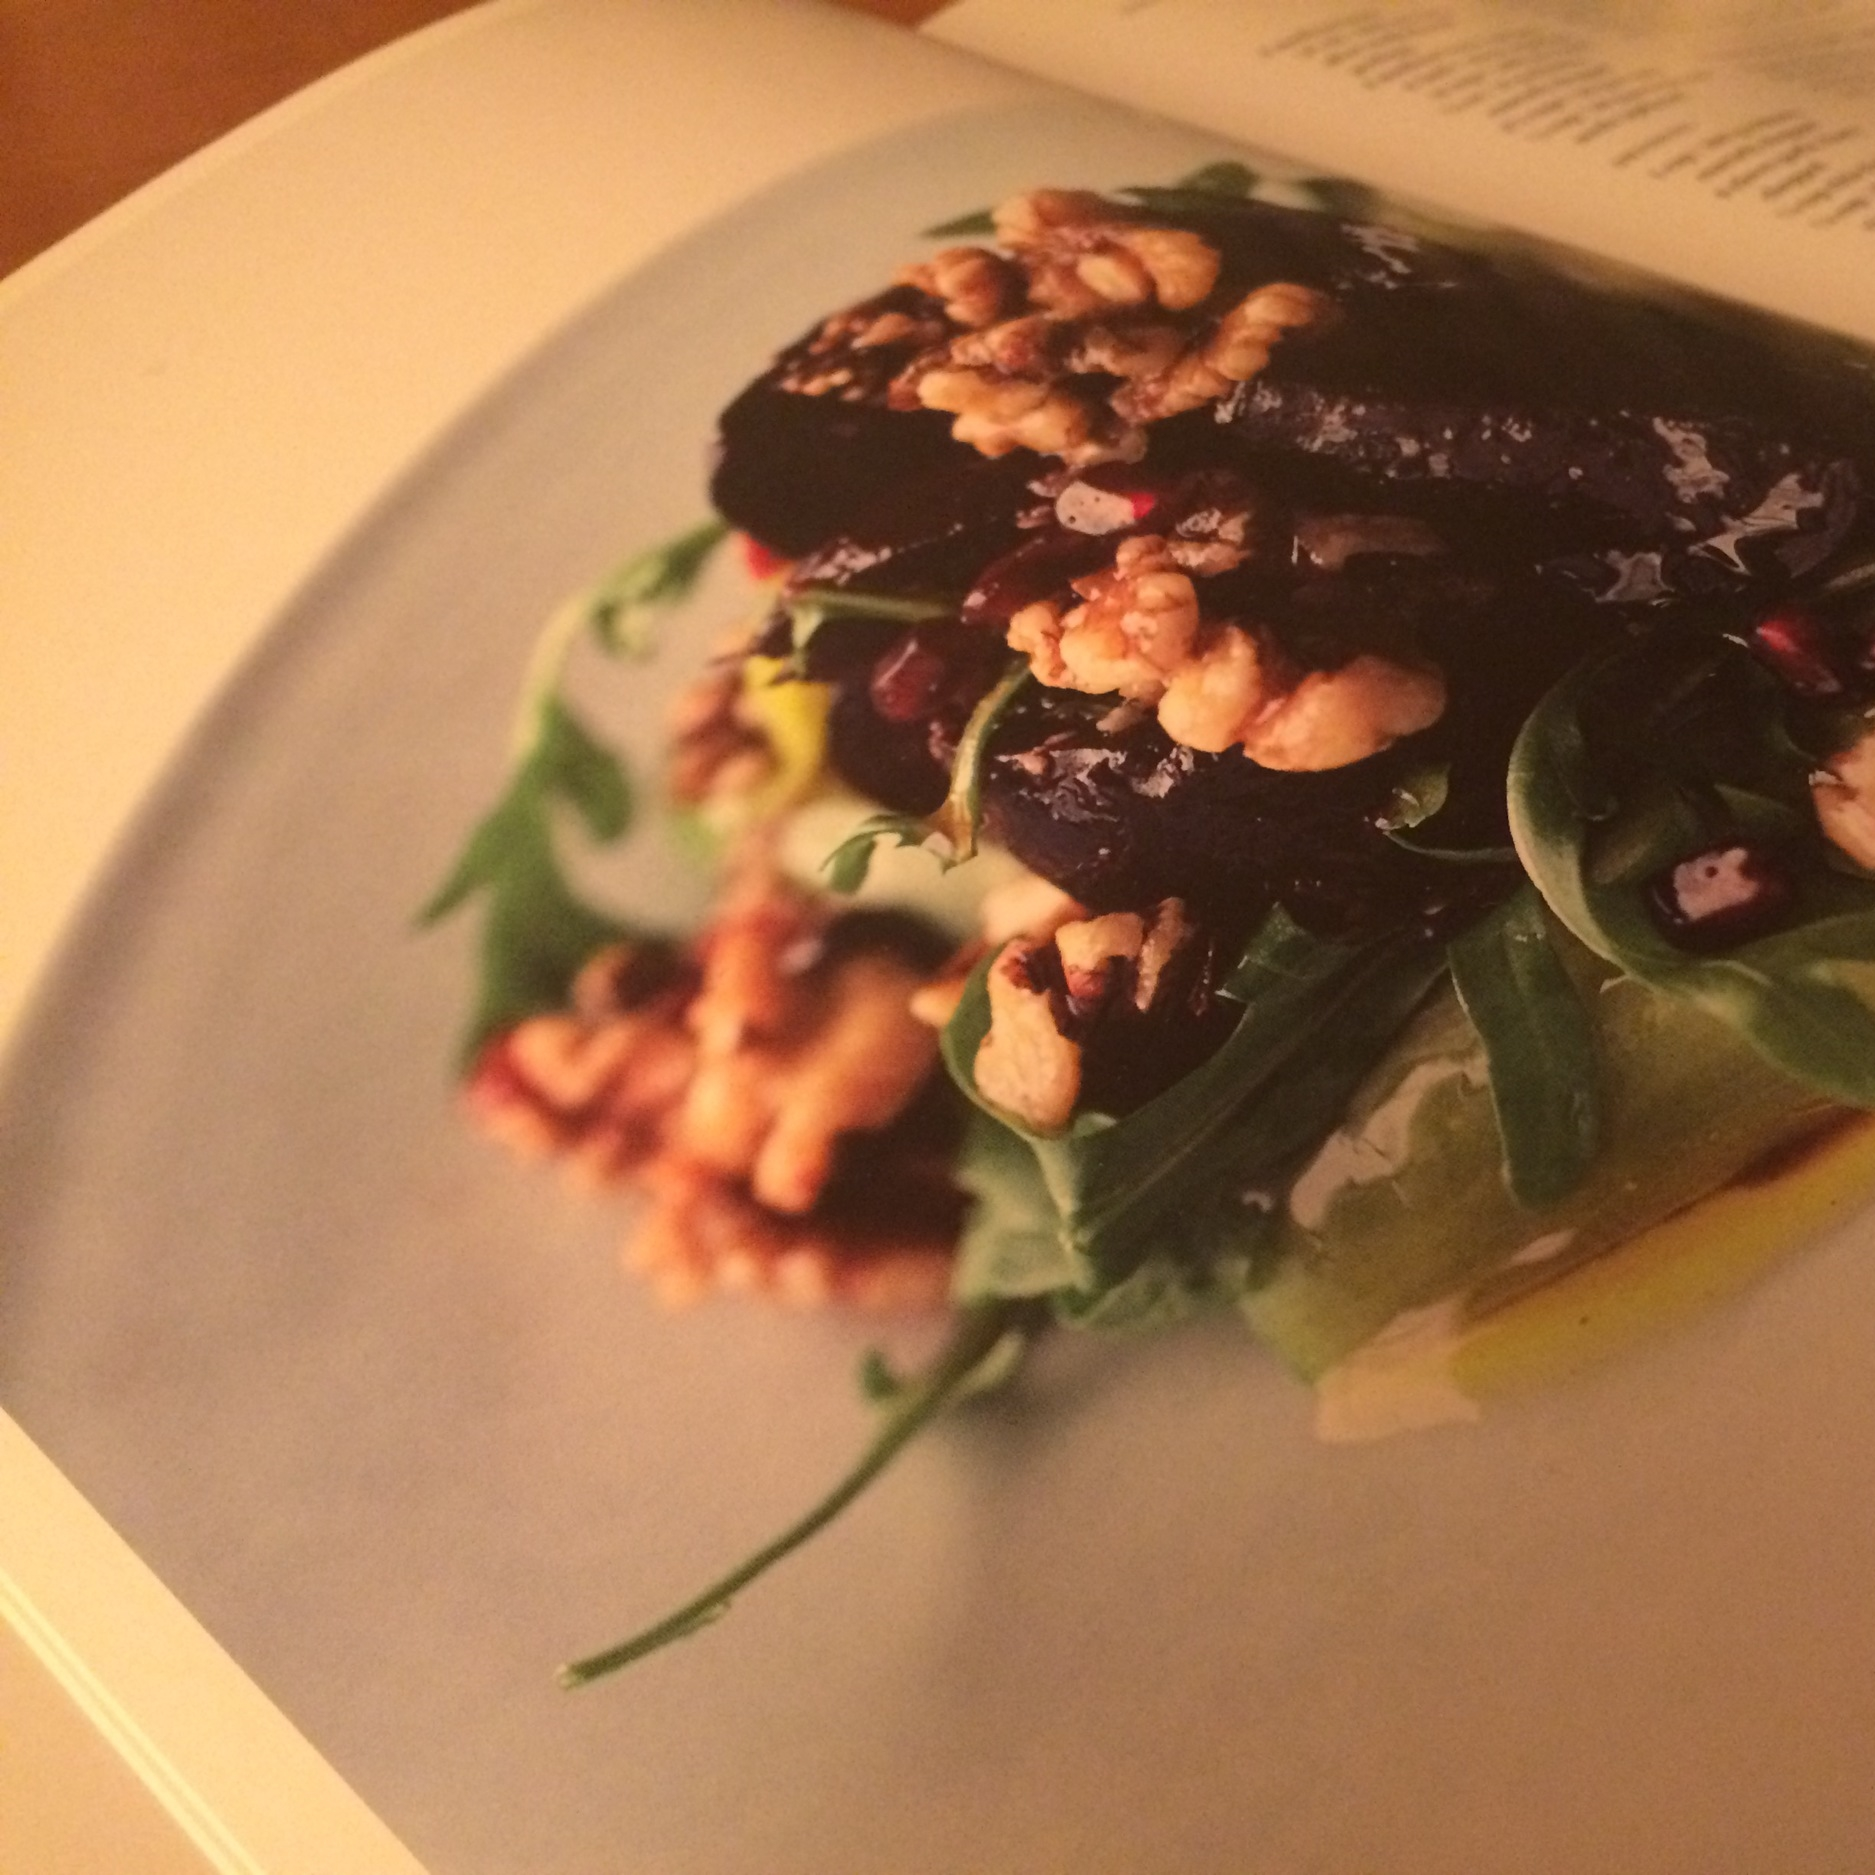 Unfortunately, I was too excited to eat to take an actual photo. So here's a photo of the photo in the book.